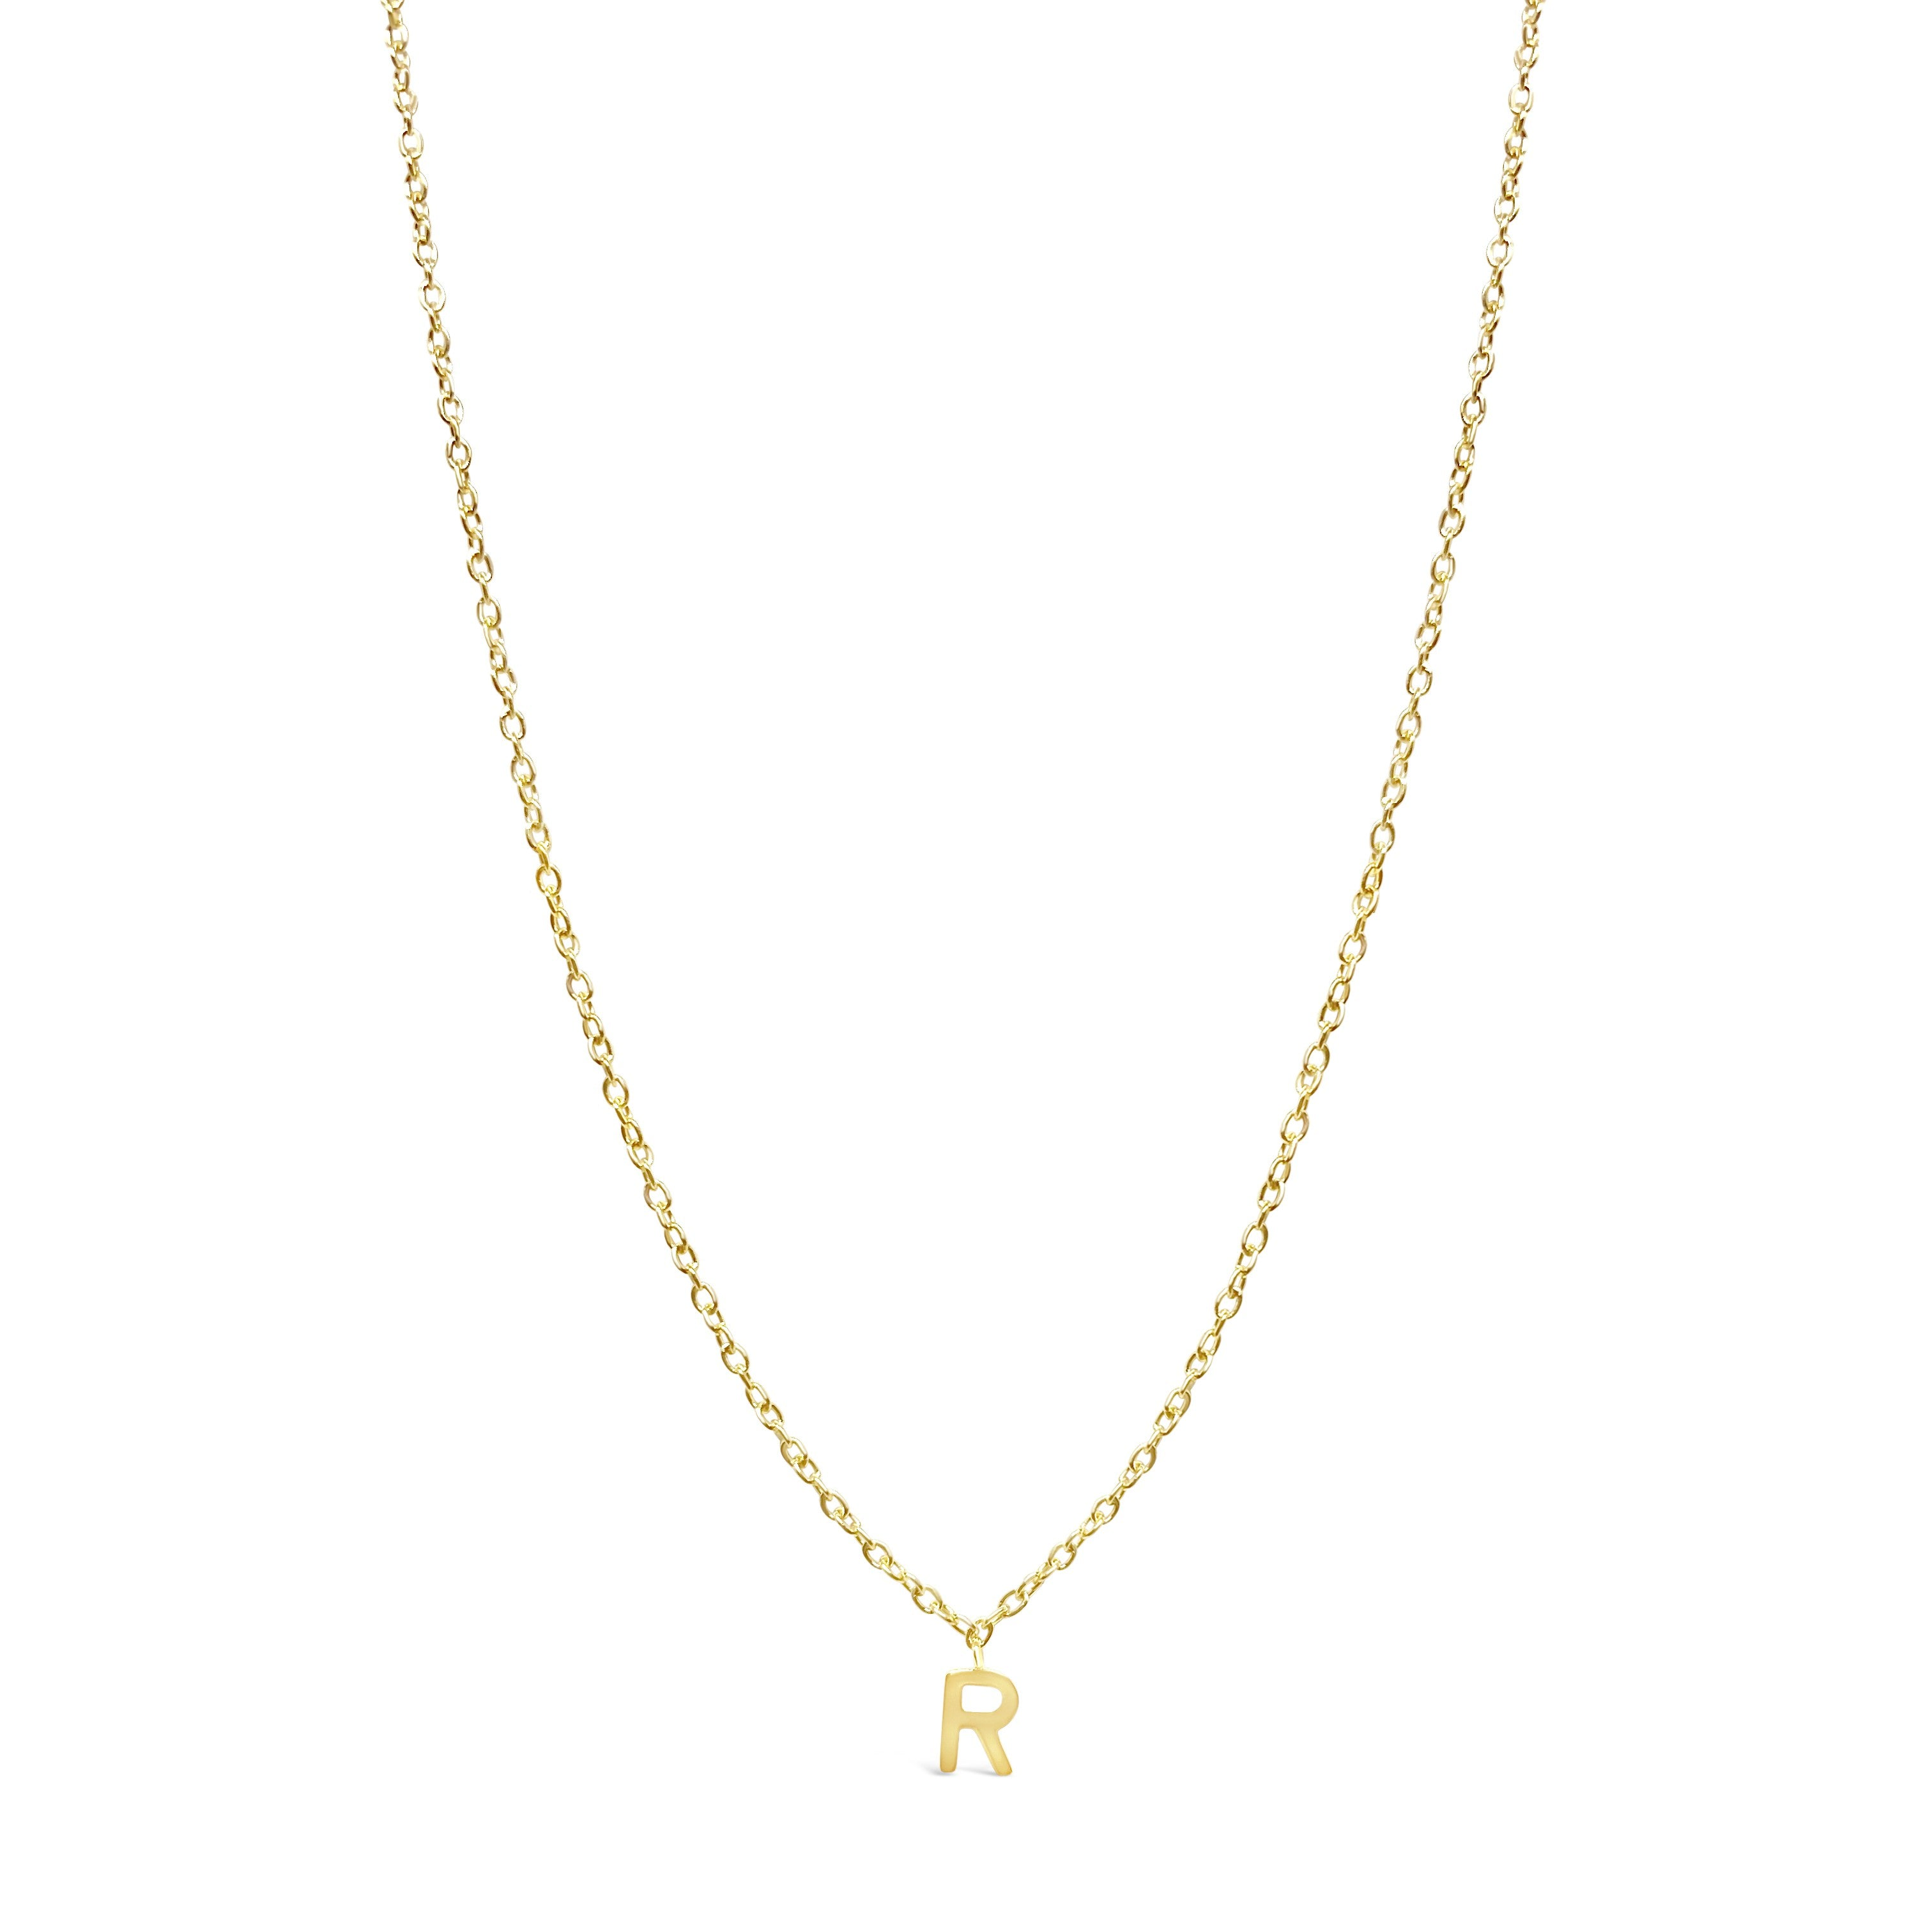 Dangling Initial Necklace